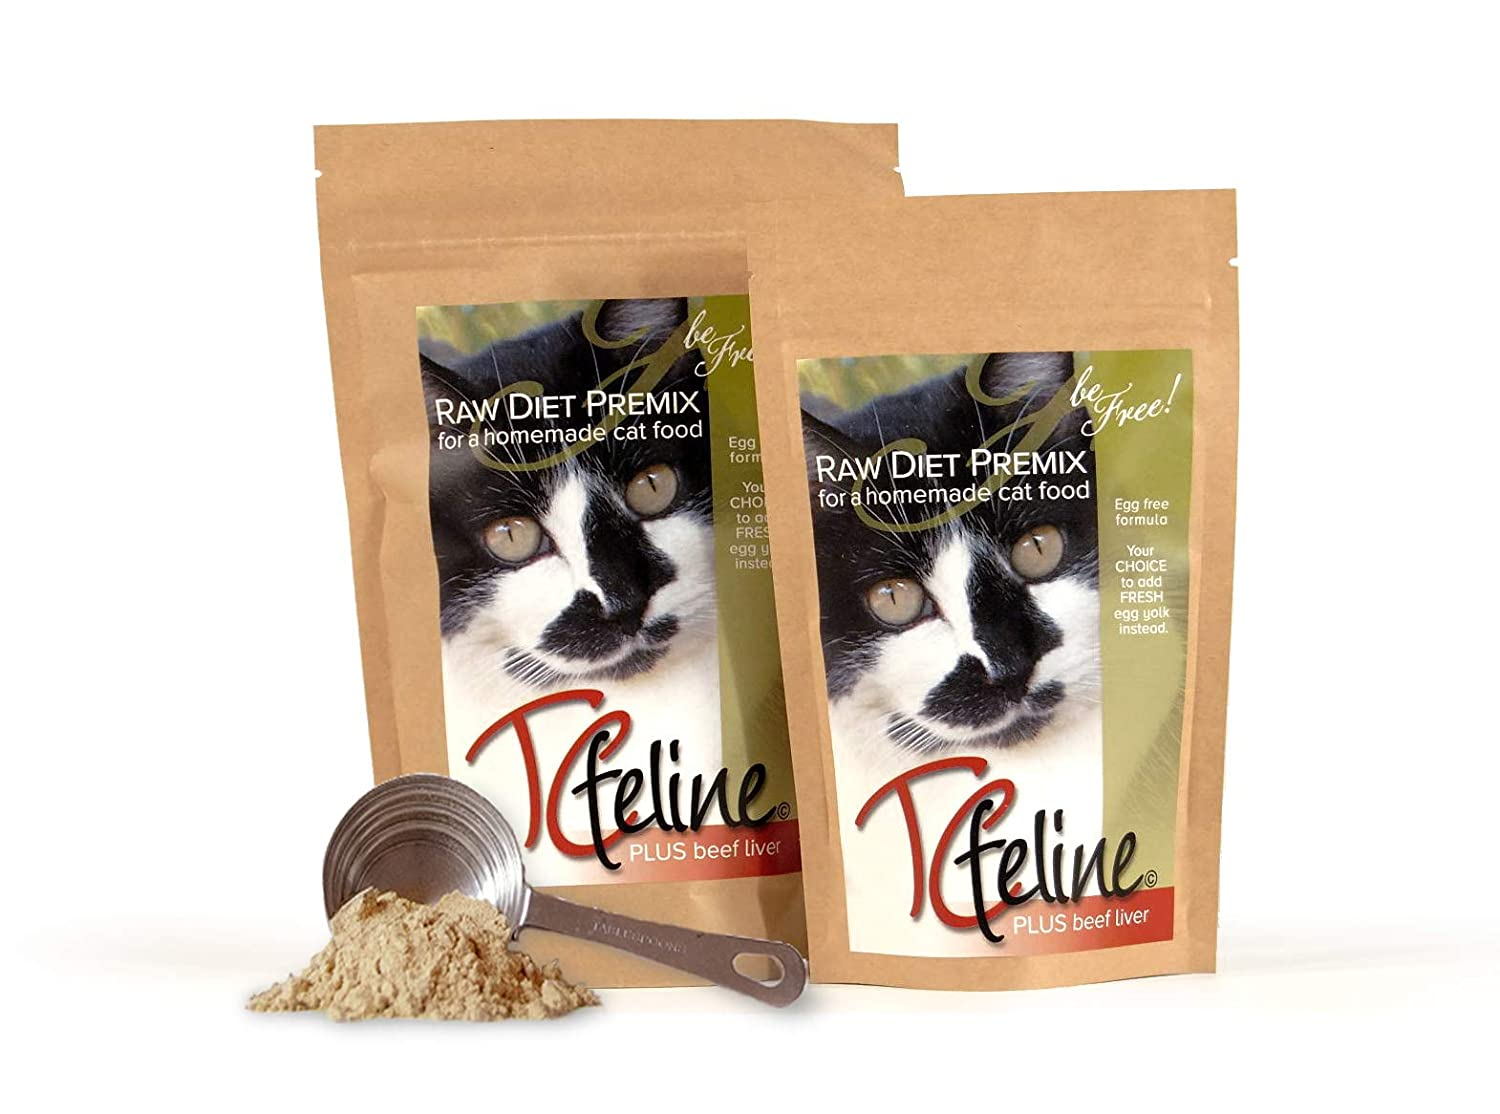 Amazon.com : TCfeline RAW Cat Food Premix/Supplement to make a Homemade,  All Natural, Grain Free, Holistic Diet - With Beef Liver (Trial 4.2 oz)